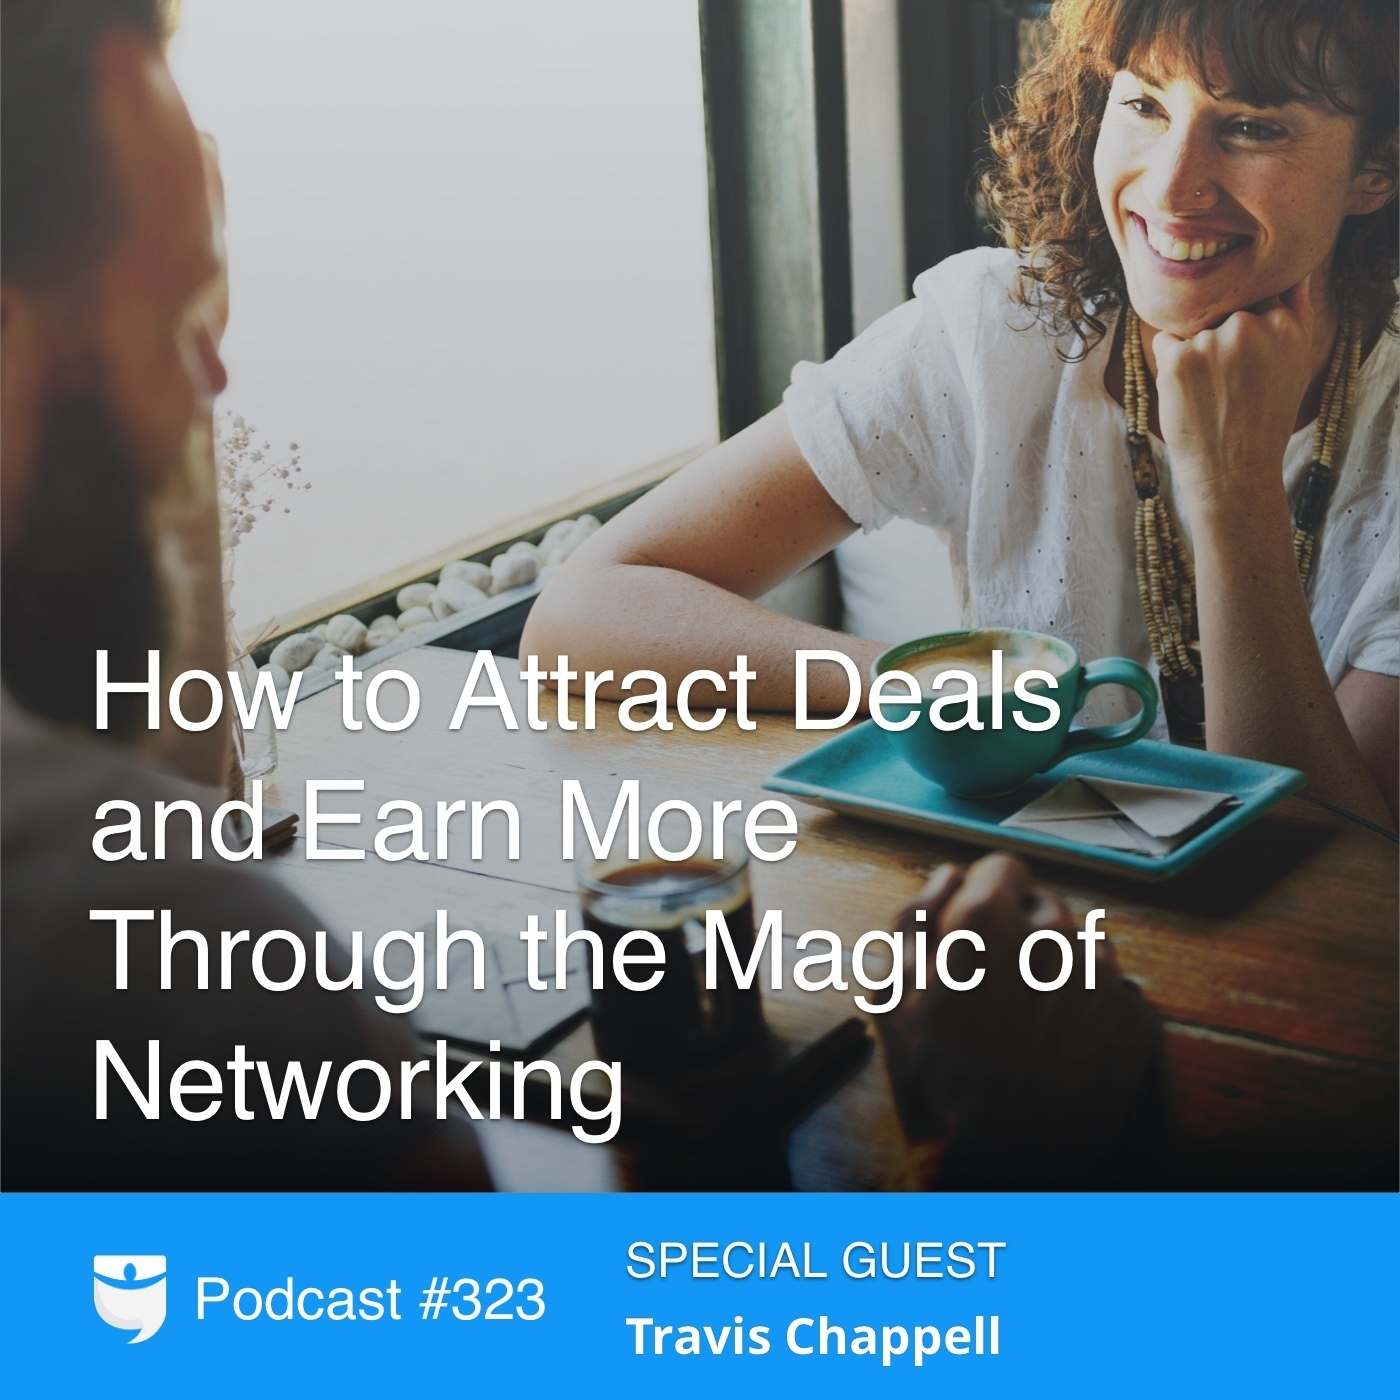 #323: How to Attract Deals and Earn More Through the Magic of Networking With Travis Chappell